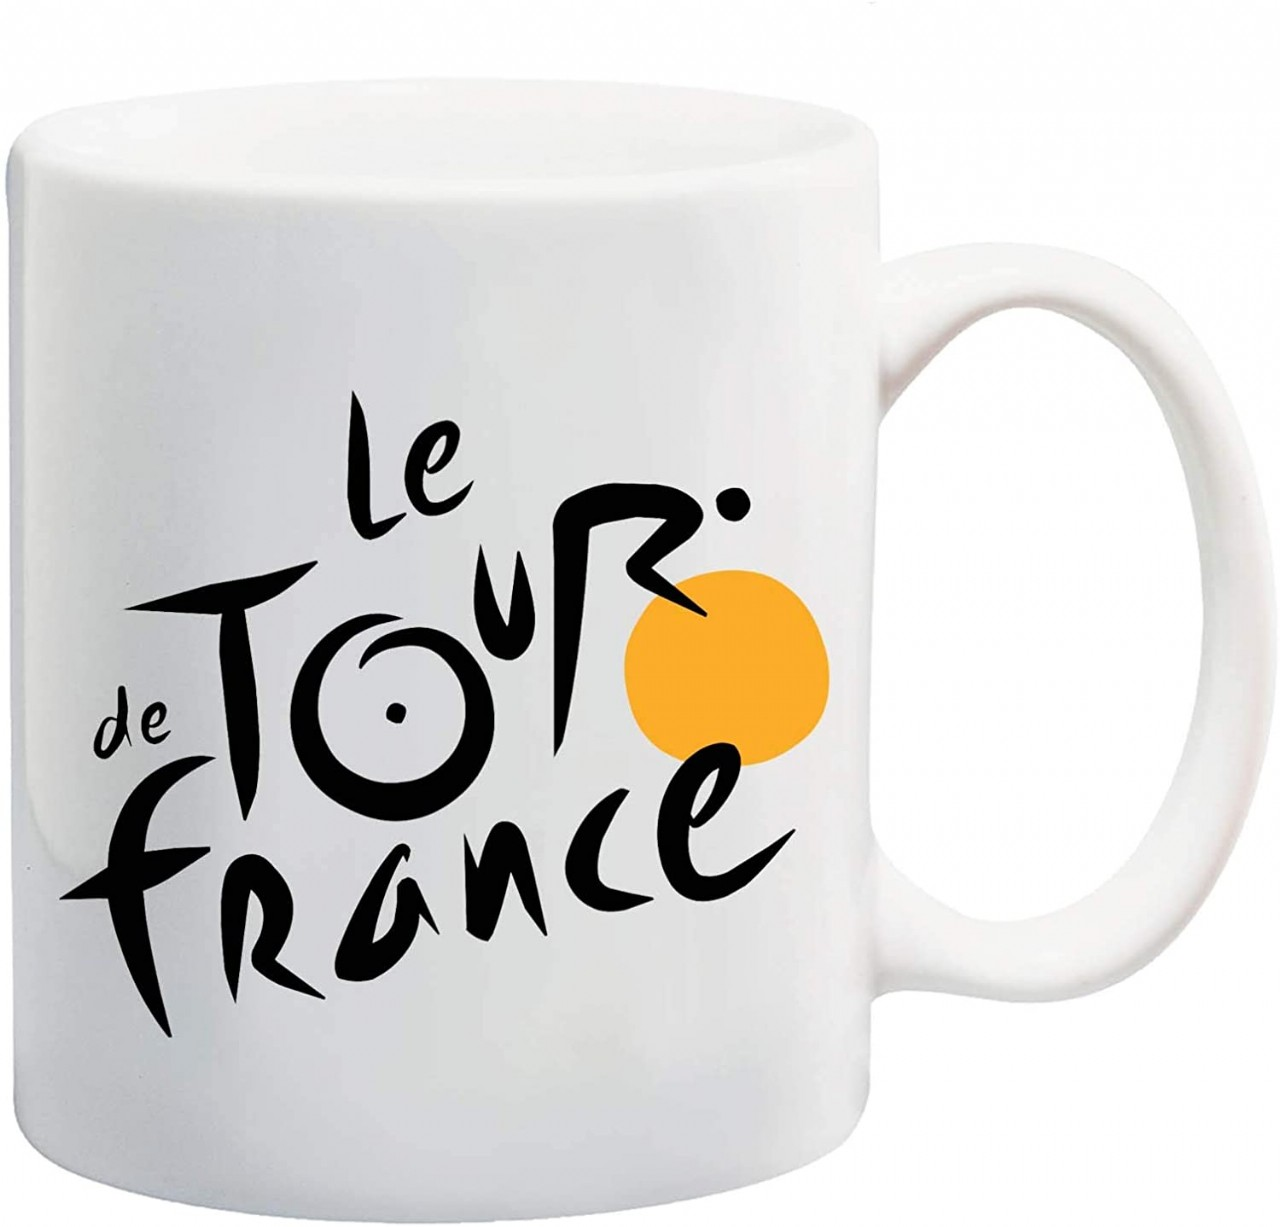 Manglam Mart The Tour Of France White Tea Coffee Mug Ceramic Coffee Tea Cup